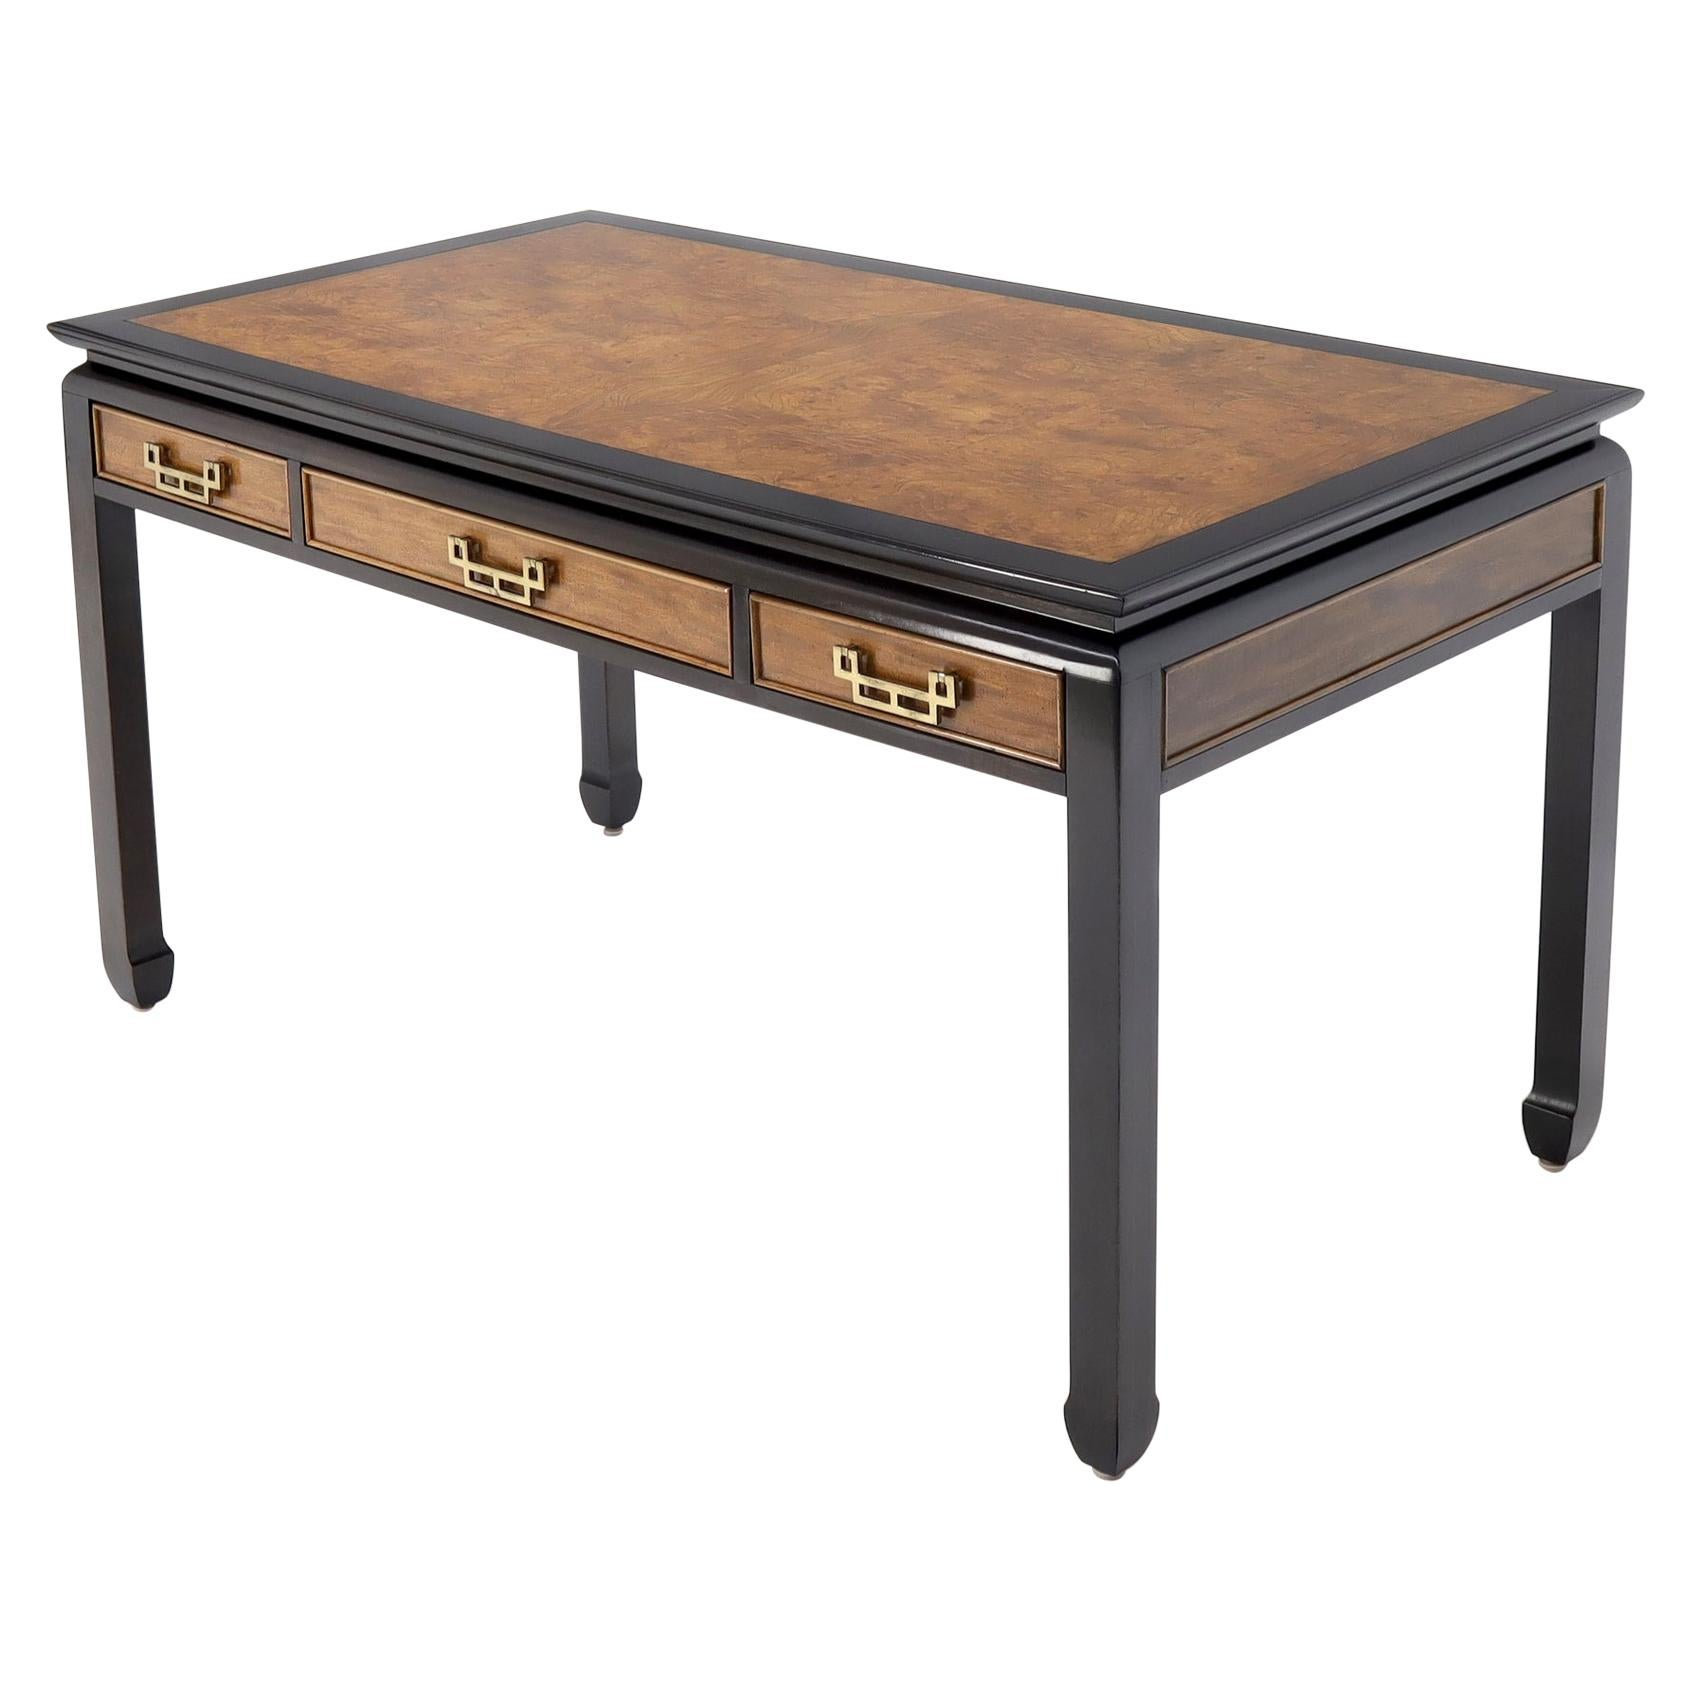 Burl Wood Black Lacquer Solid Brass Hardware Three-Drawer Desk Writing Table